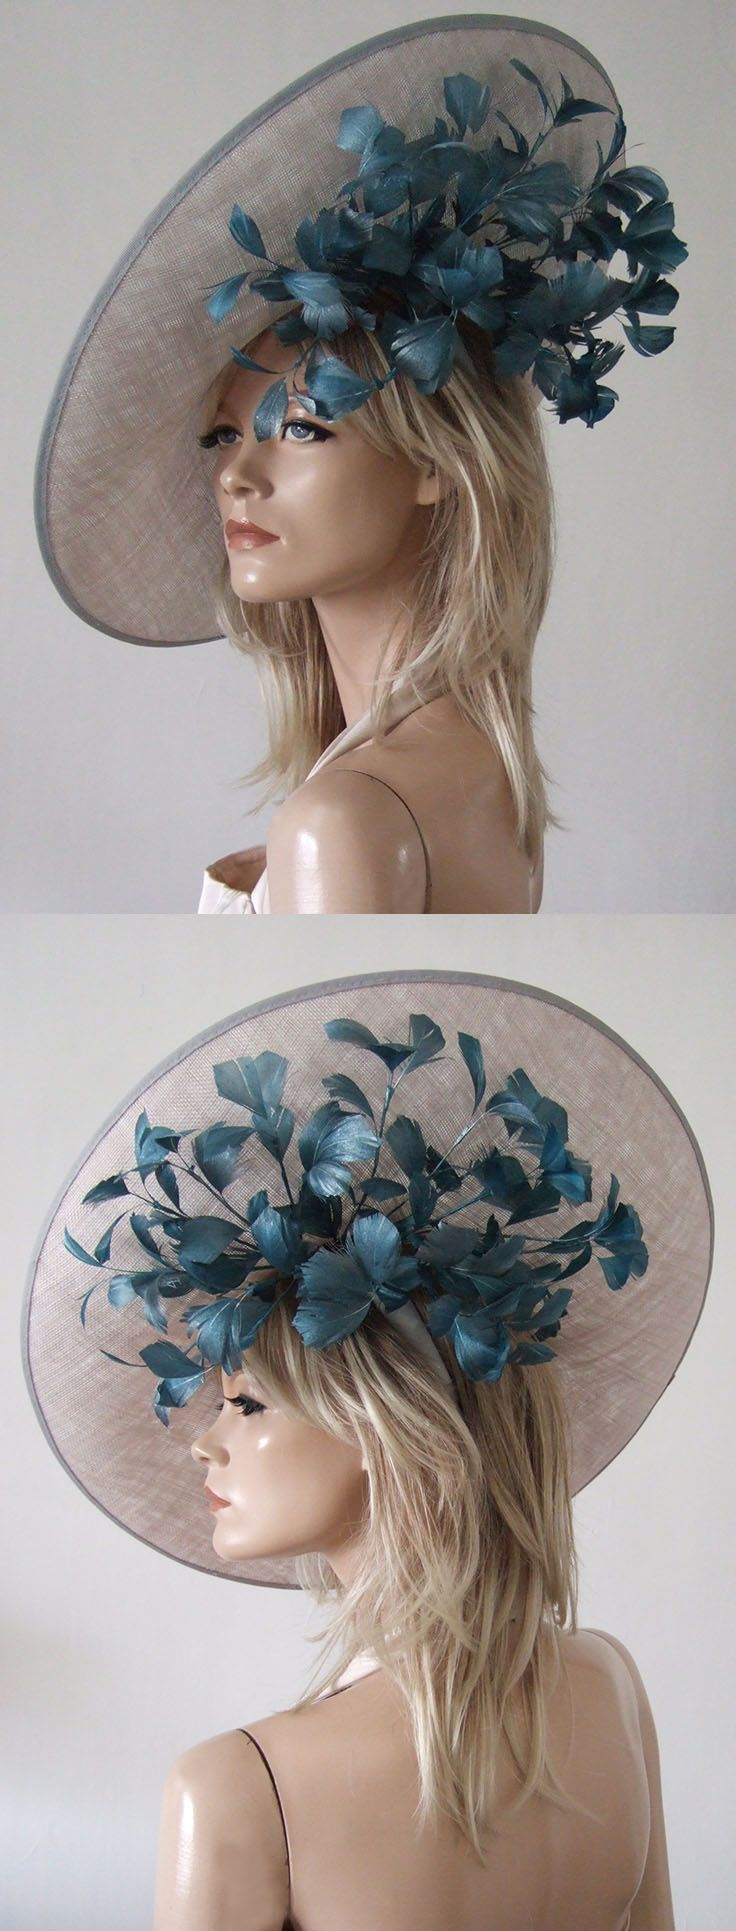 Silver Teal Feathered Tilted Slice Hat from Dress-2-Impress Hat Hire. Ascot Hats. Hats for the Races, Mother of the Bride Hats. Handmade and available to hire. Or have your own made for you in other colours to match your outfit. Contact via the email on website. #ascot #royalascot #hats #millinery #hathire #motherofthebride